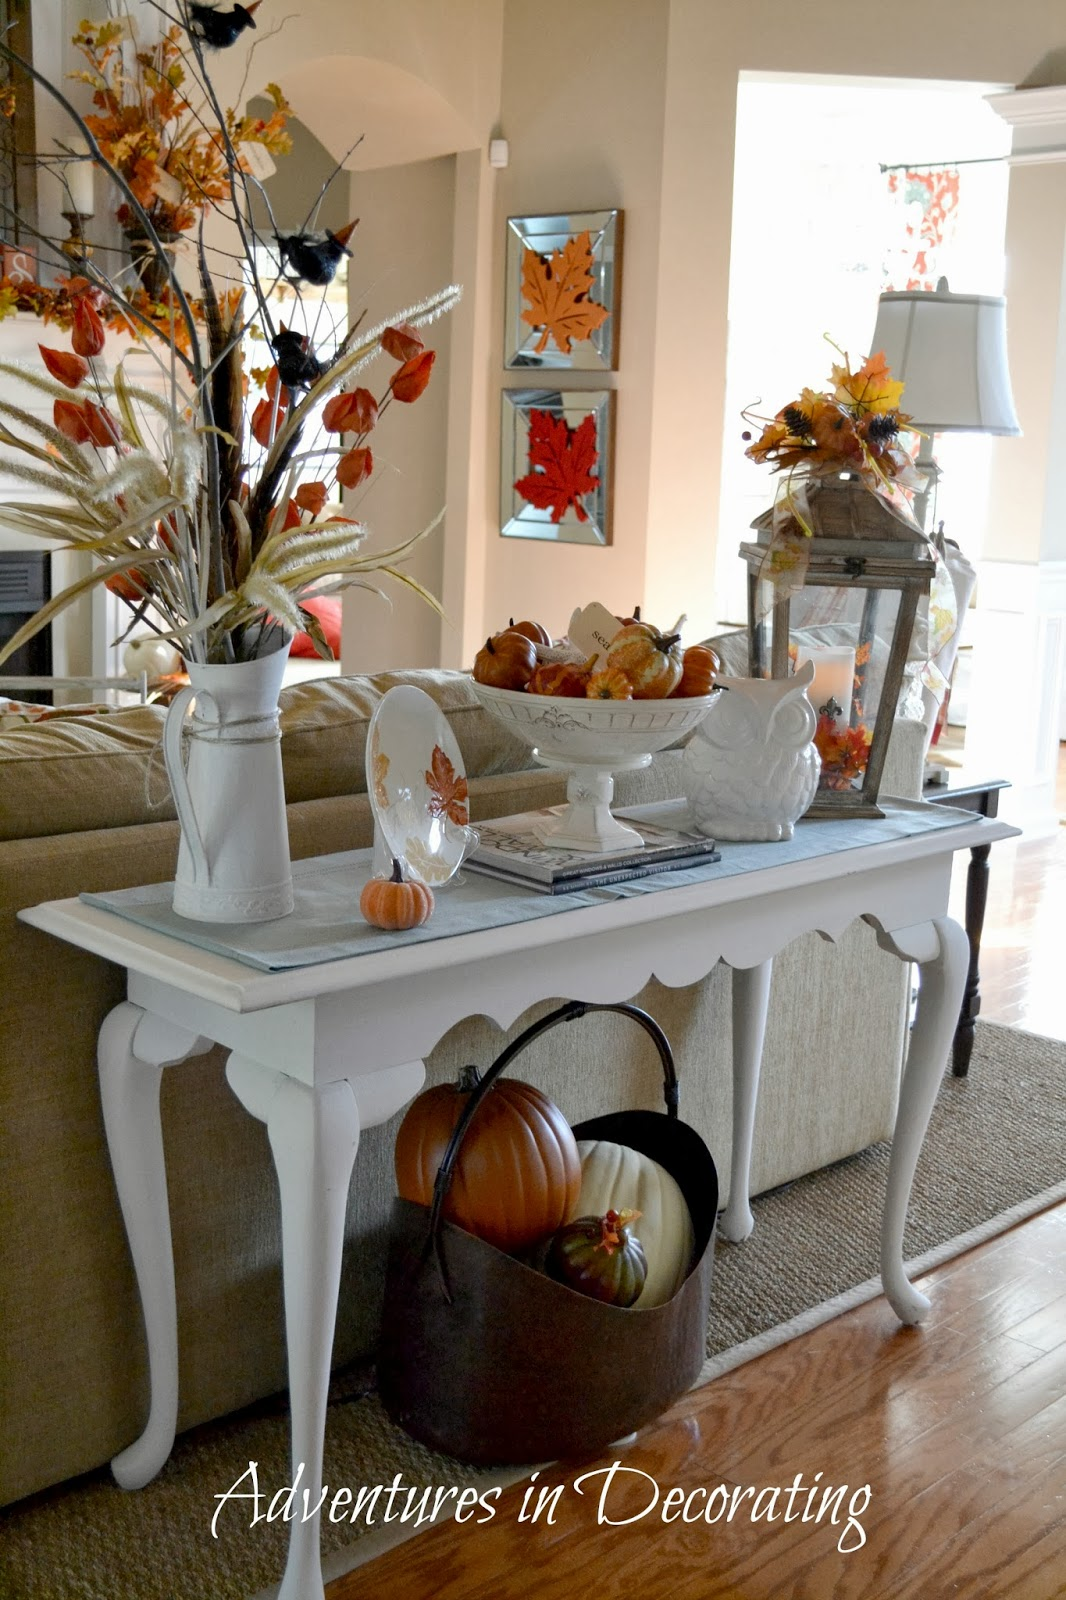 Adventures In Decorating Our Fall Kitchen: Adventures In Decorating: A Fall Vignette That Didn't Cost